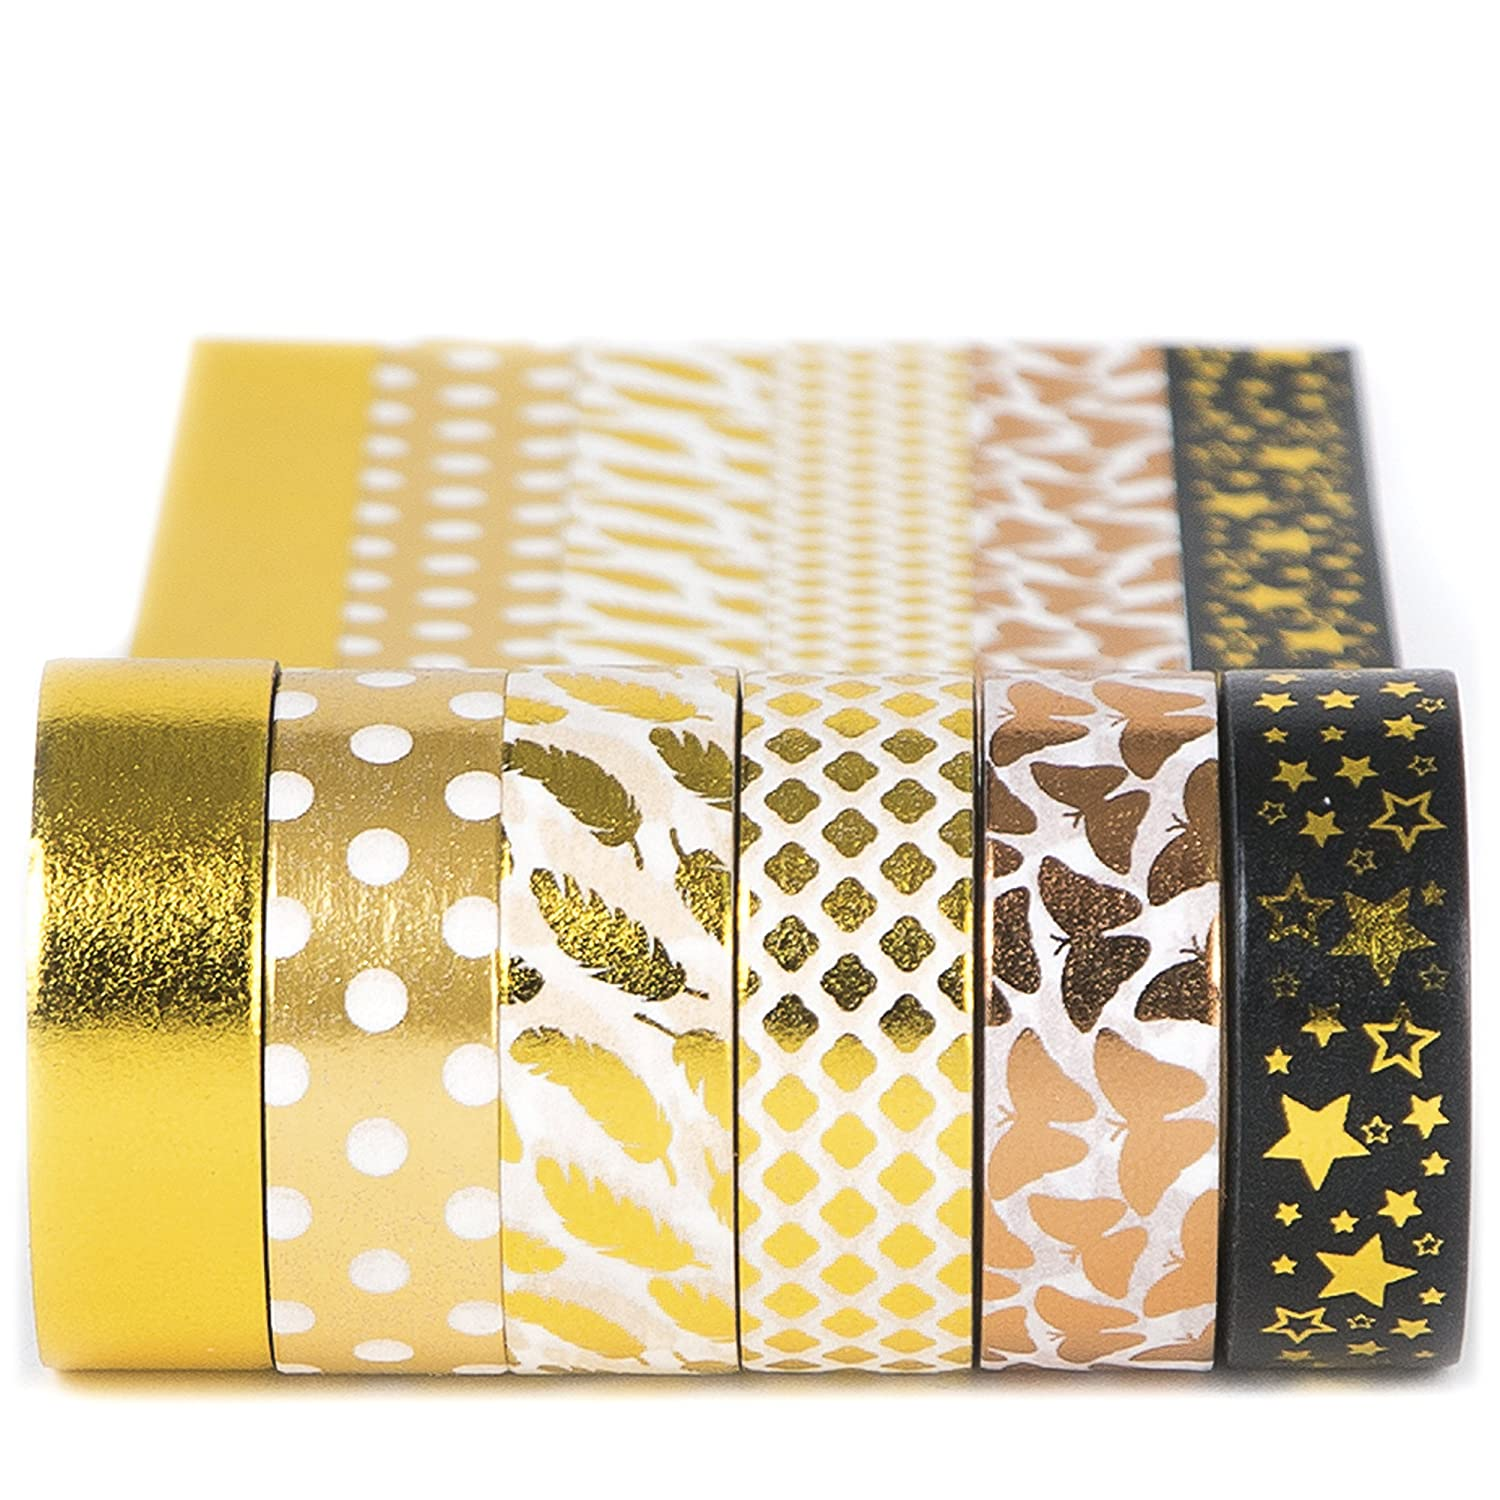 Gold Washi Tape Set 6 rolls, Decorative Craft Tapes Kit of Cute Patterns for Scrapbooking, DIY Projects